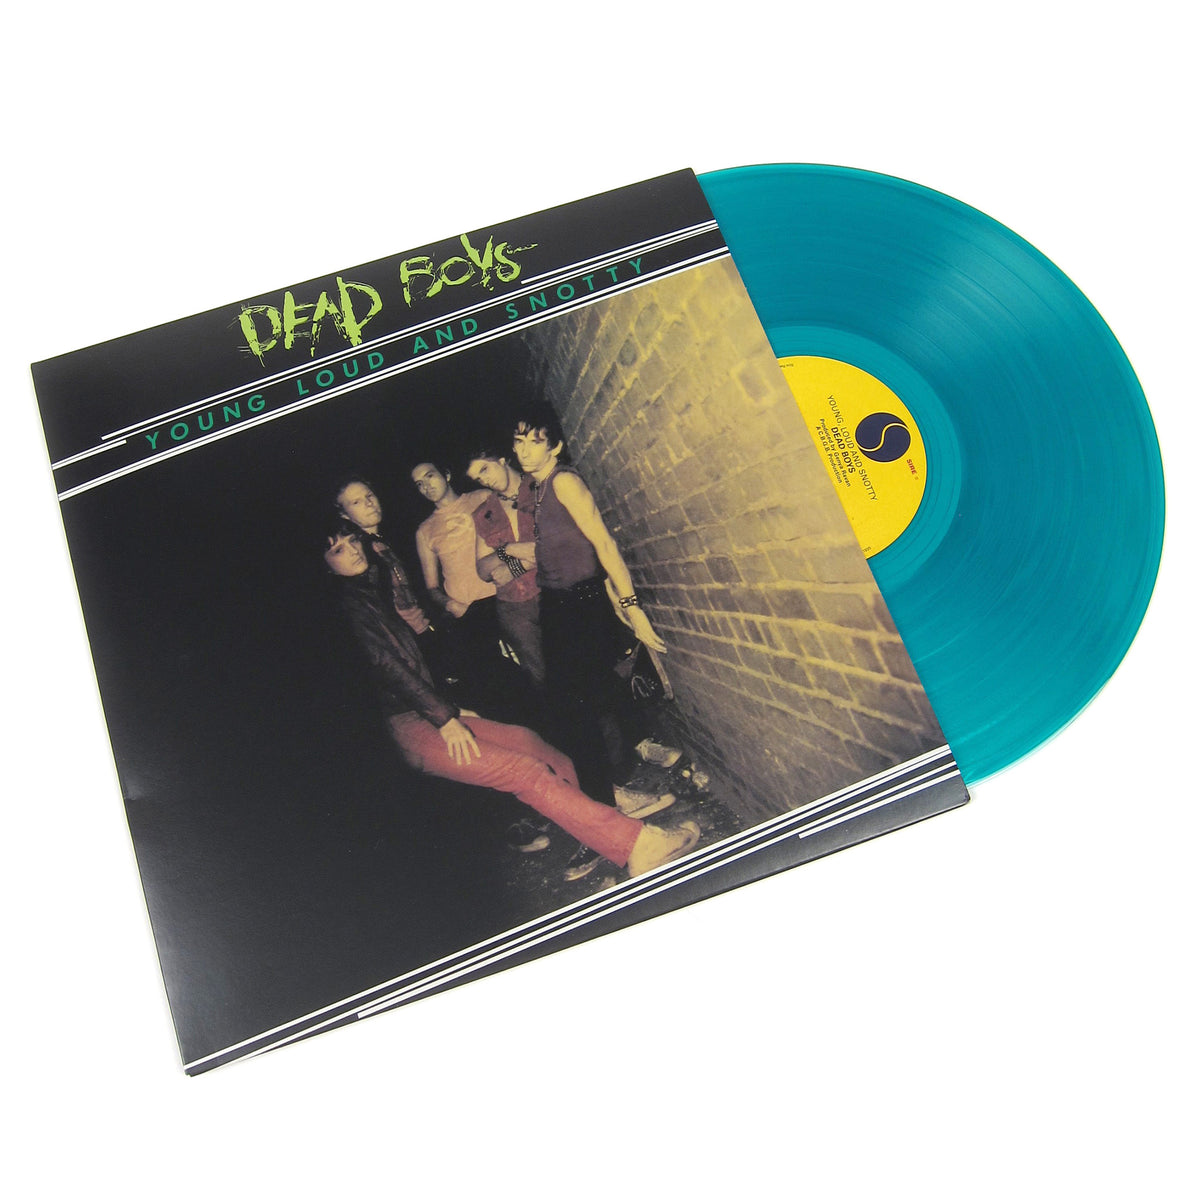 Dead Boys: Young, Loud & Snotty (Colored Vinyl) Vinyl LP